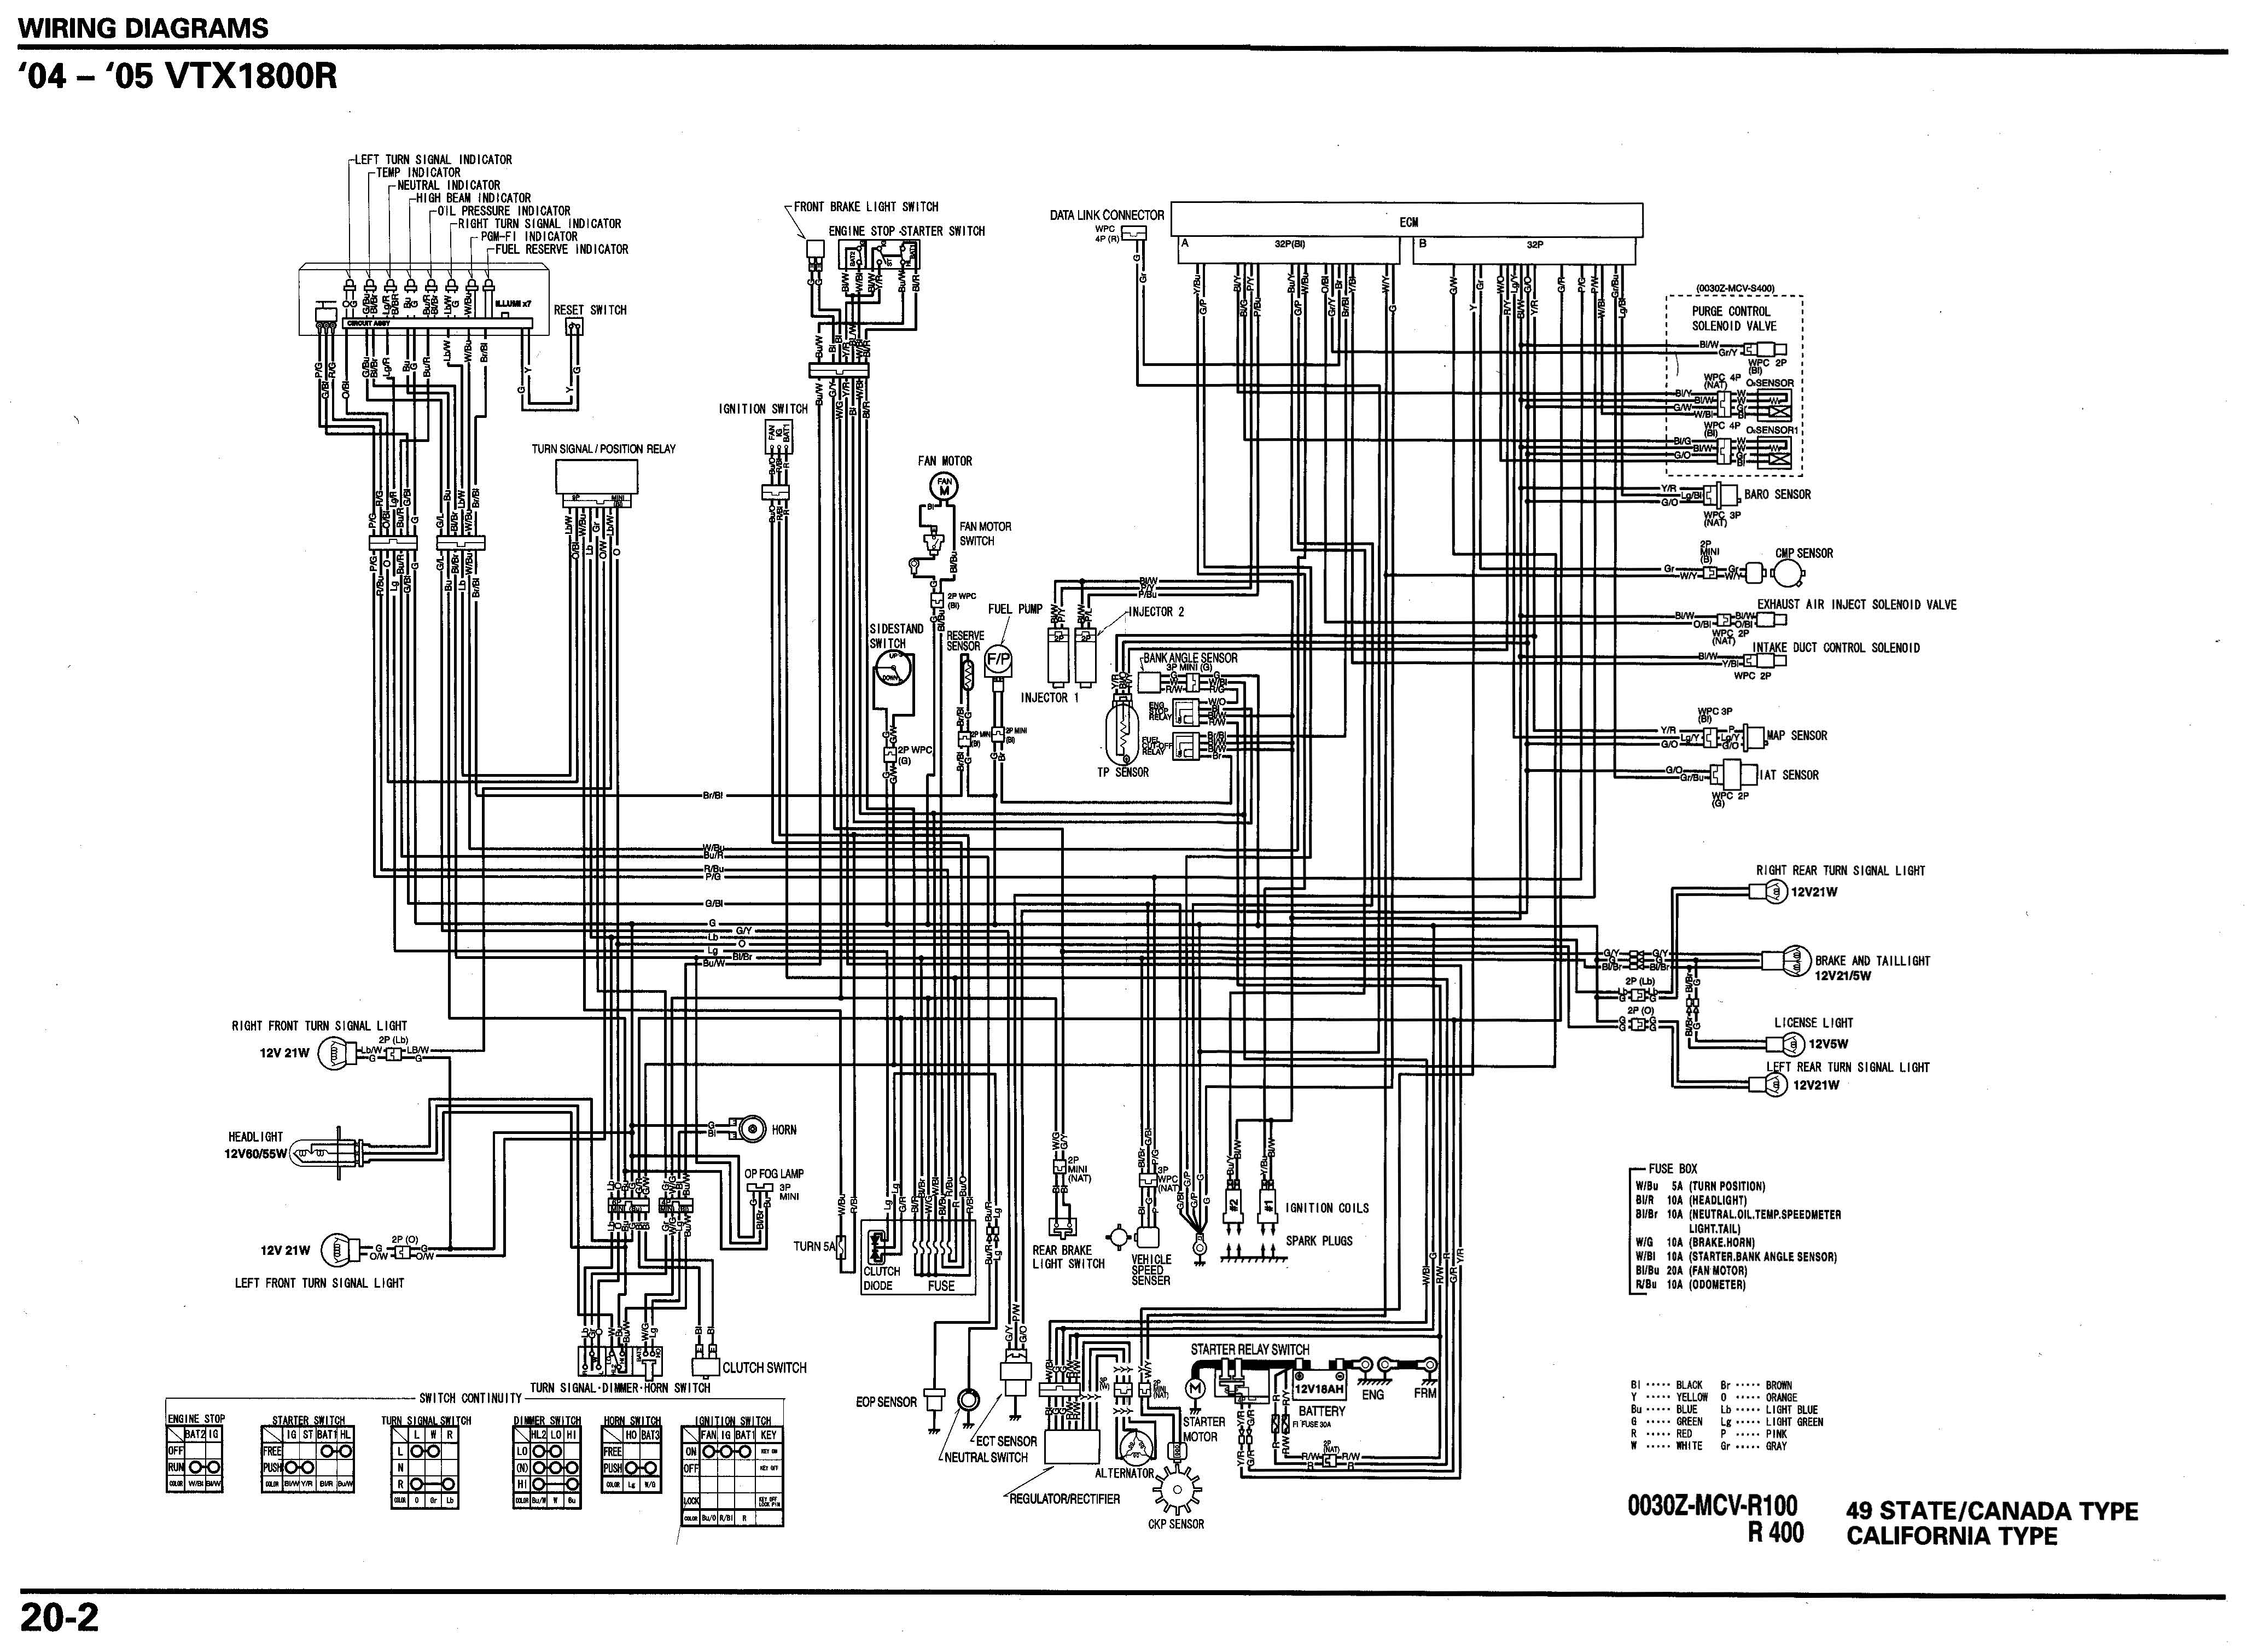 2003 honda crv fuse box diagram electric hot water tank wiring library